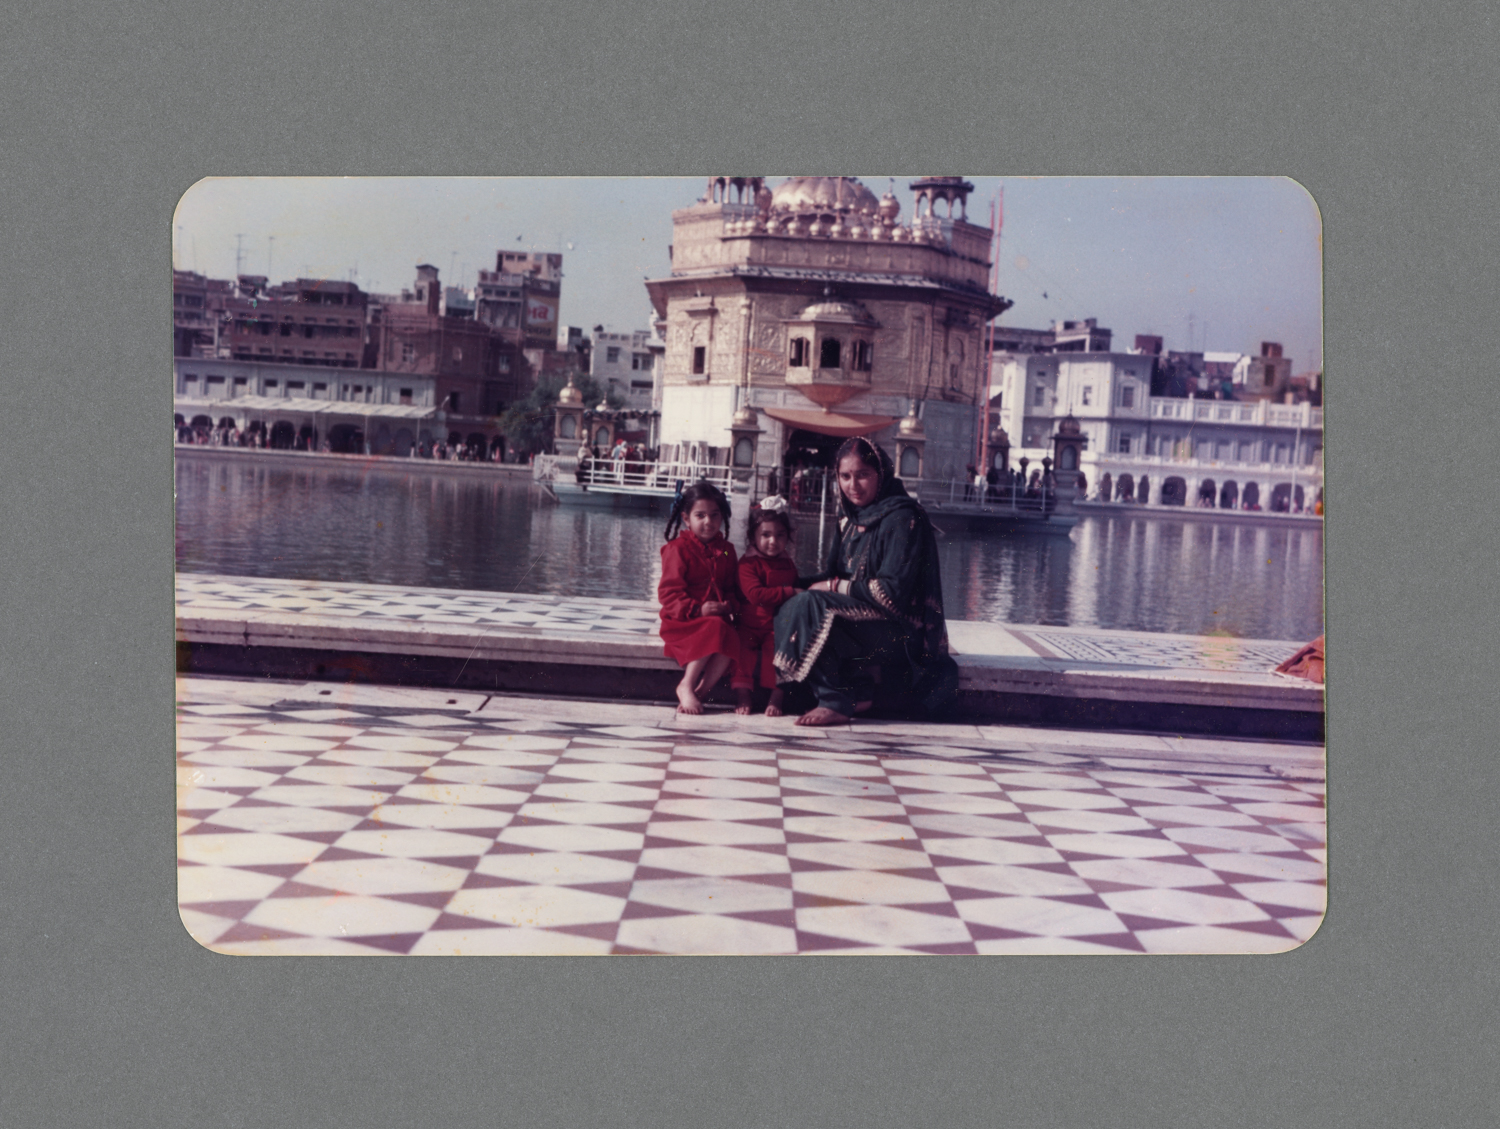 Golden Temple, Punjab, India c.1982